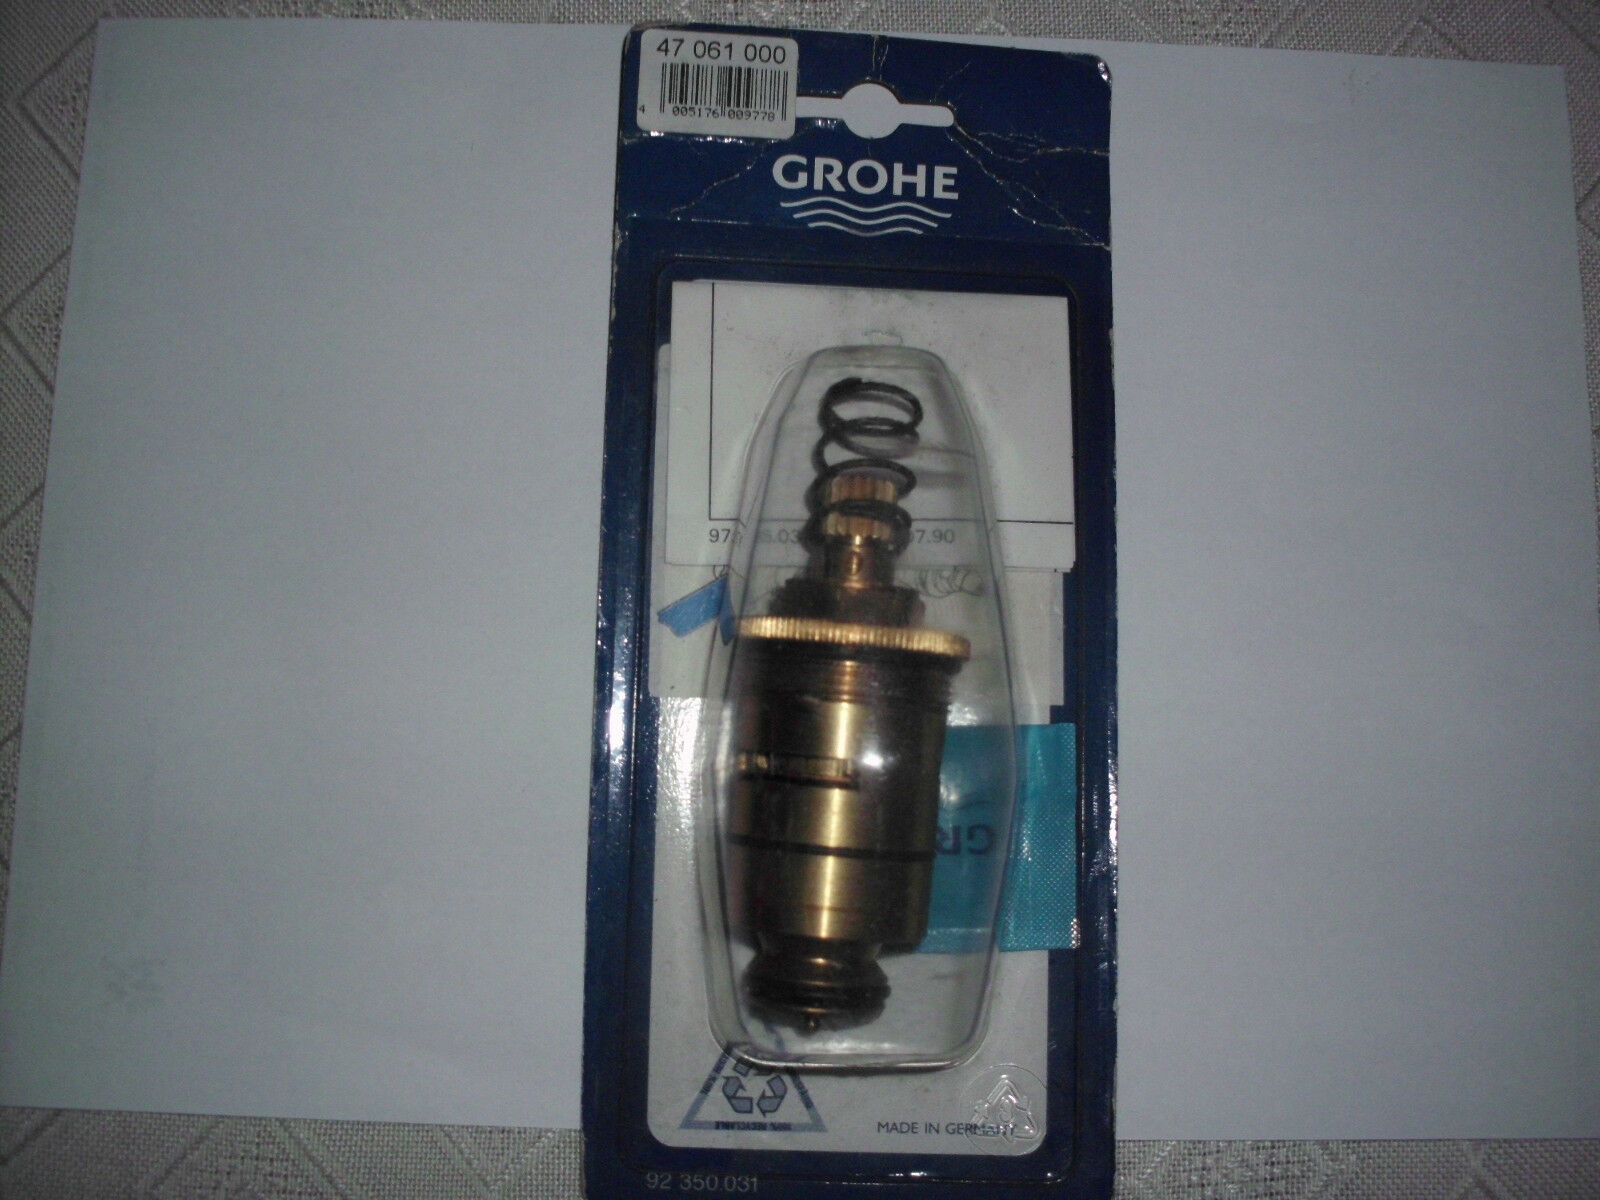 Grohe Dehnstoff Thermoelement 1 2  47061000